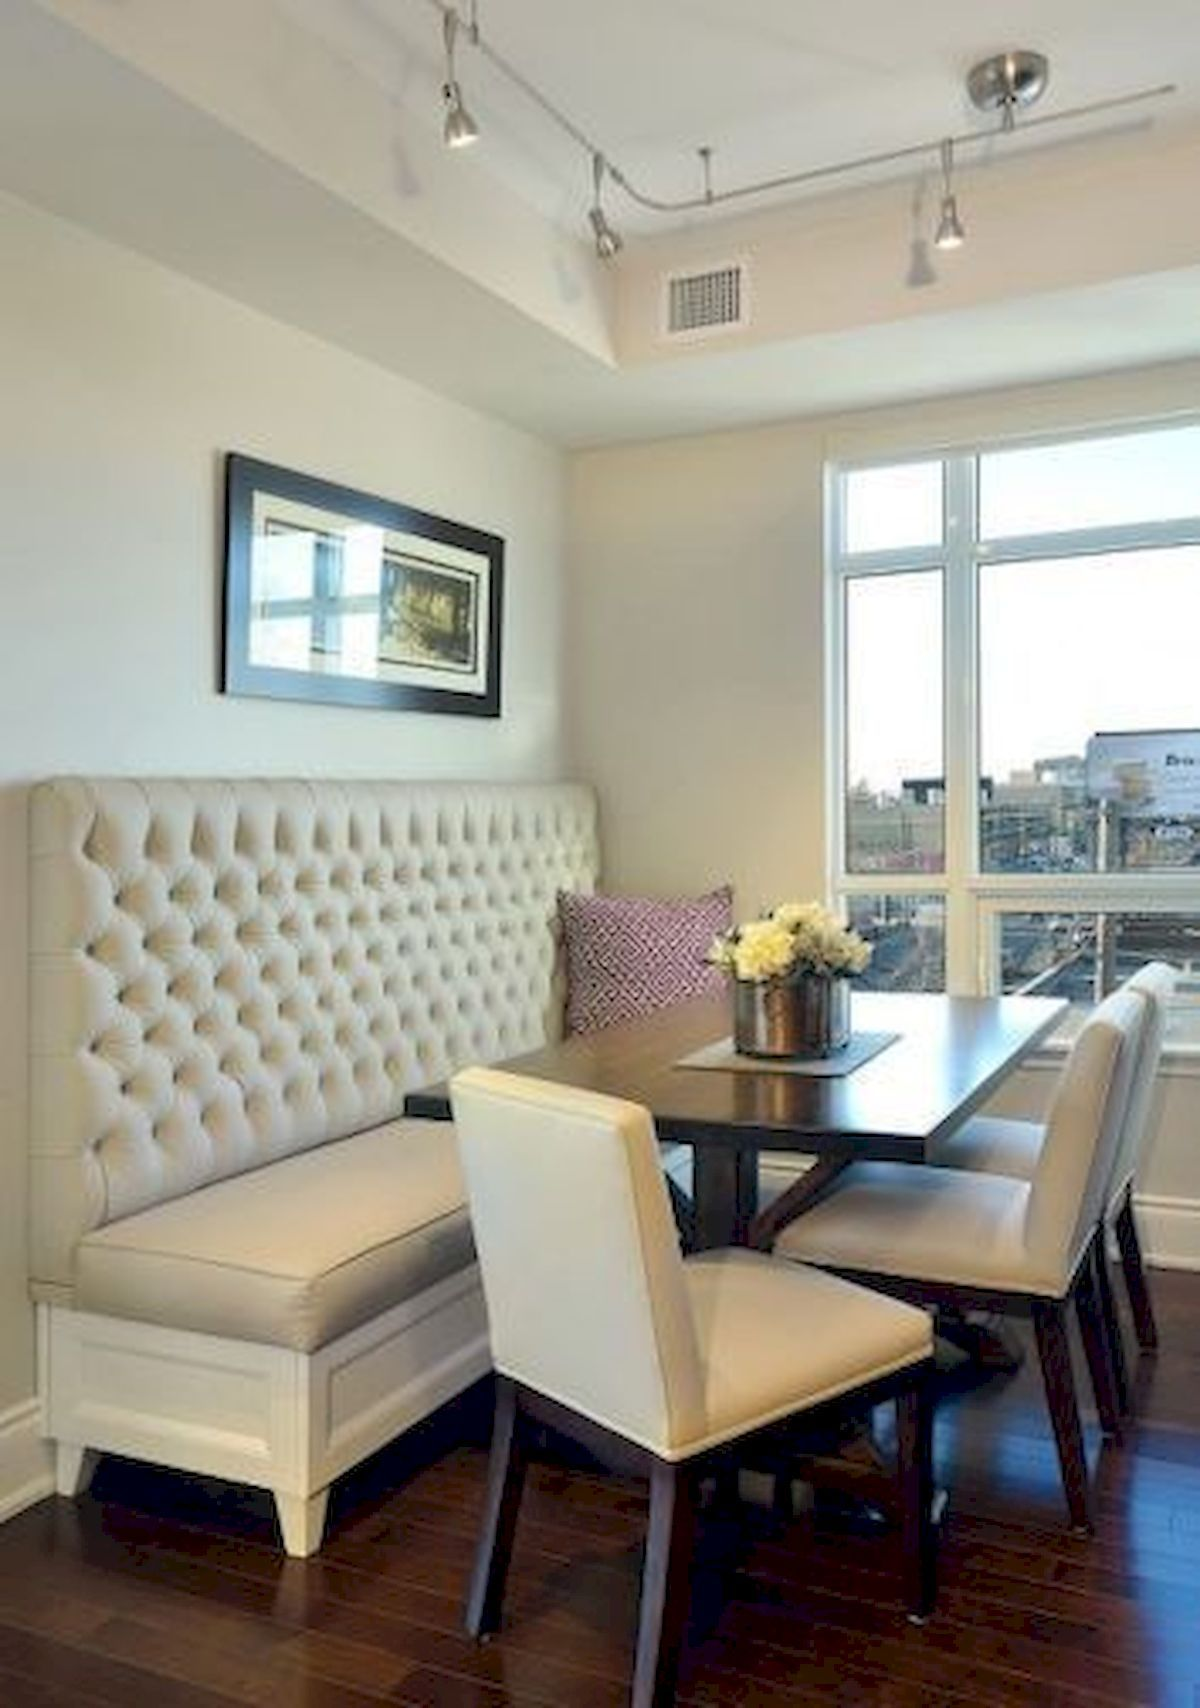 54 Premier Source For Affordable Dining Room Ideas On A Budget